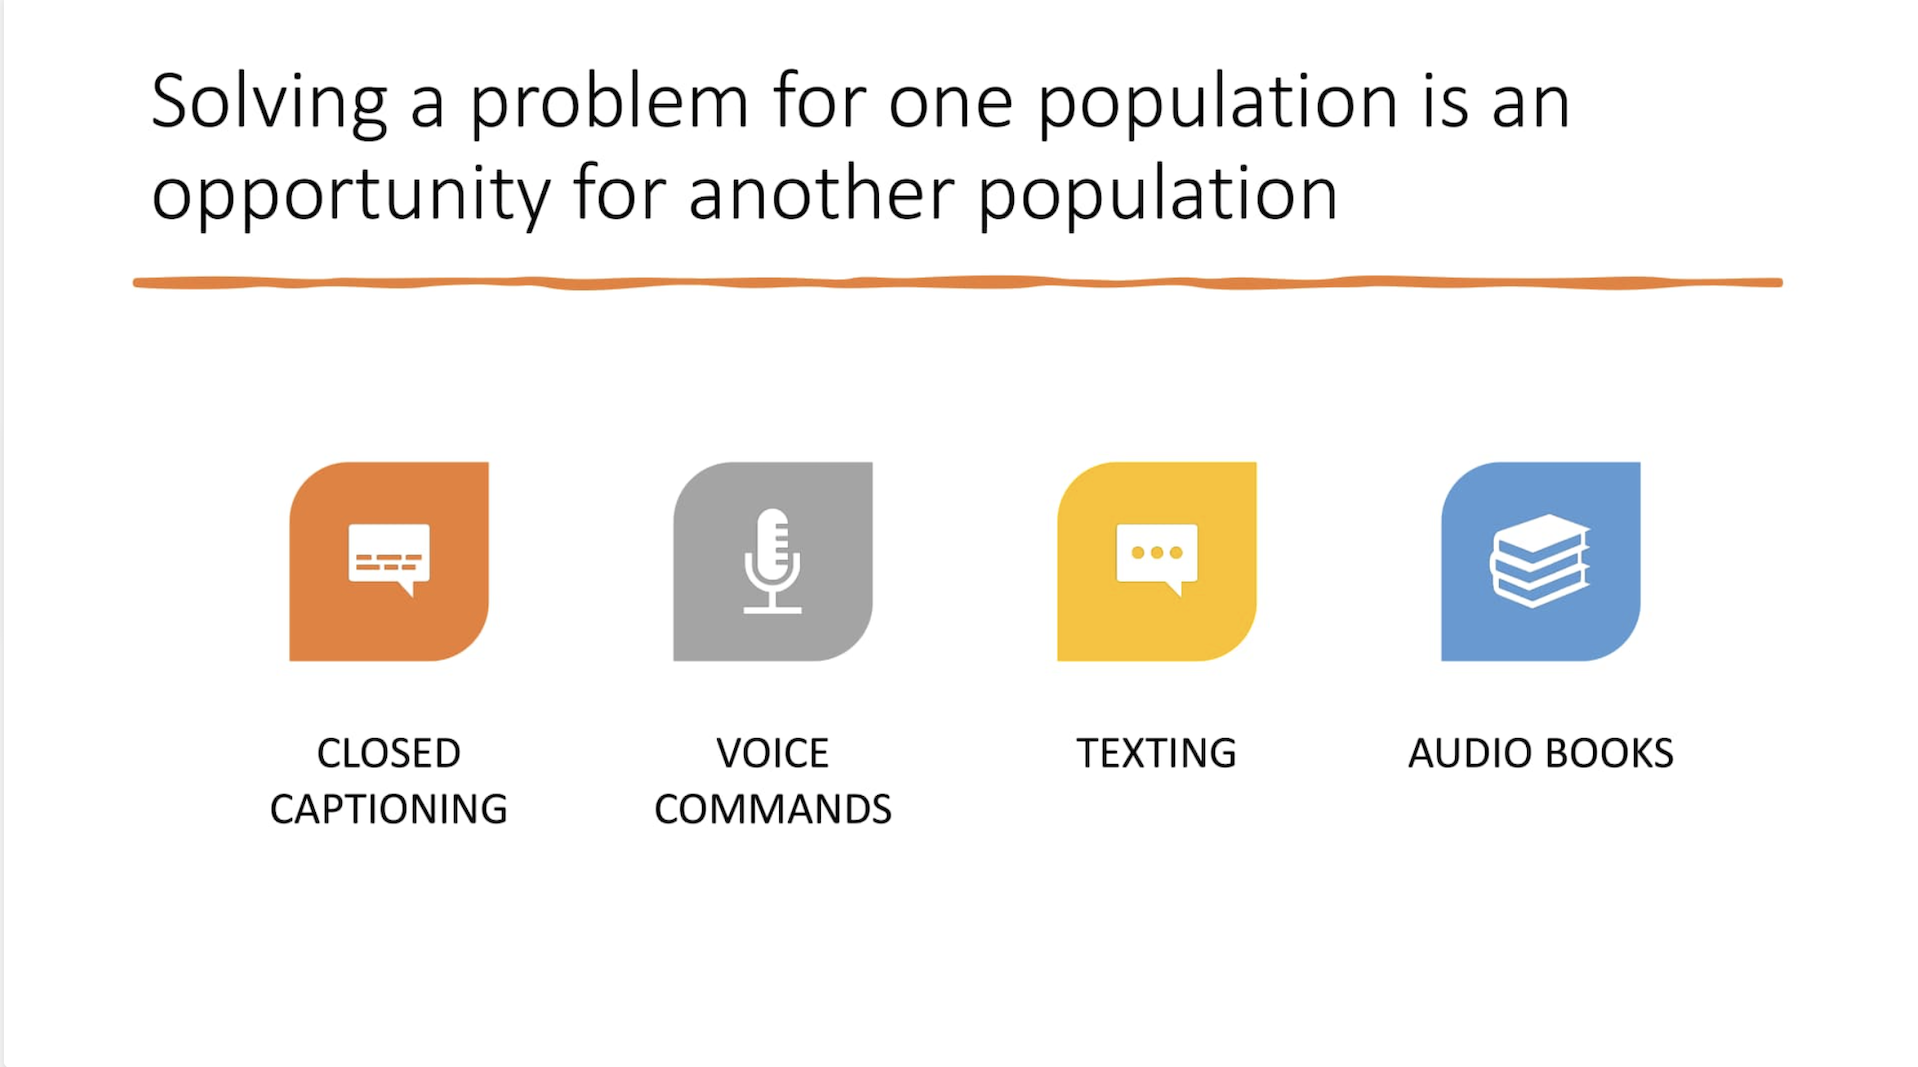 Four icons of closed captioning, voice commands, texting, and audio books. Text across the top: Solving a problem for one population is an opportunity for another population.